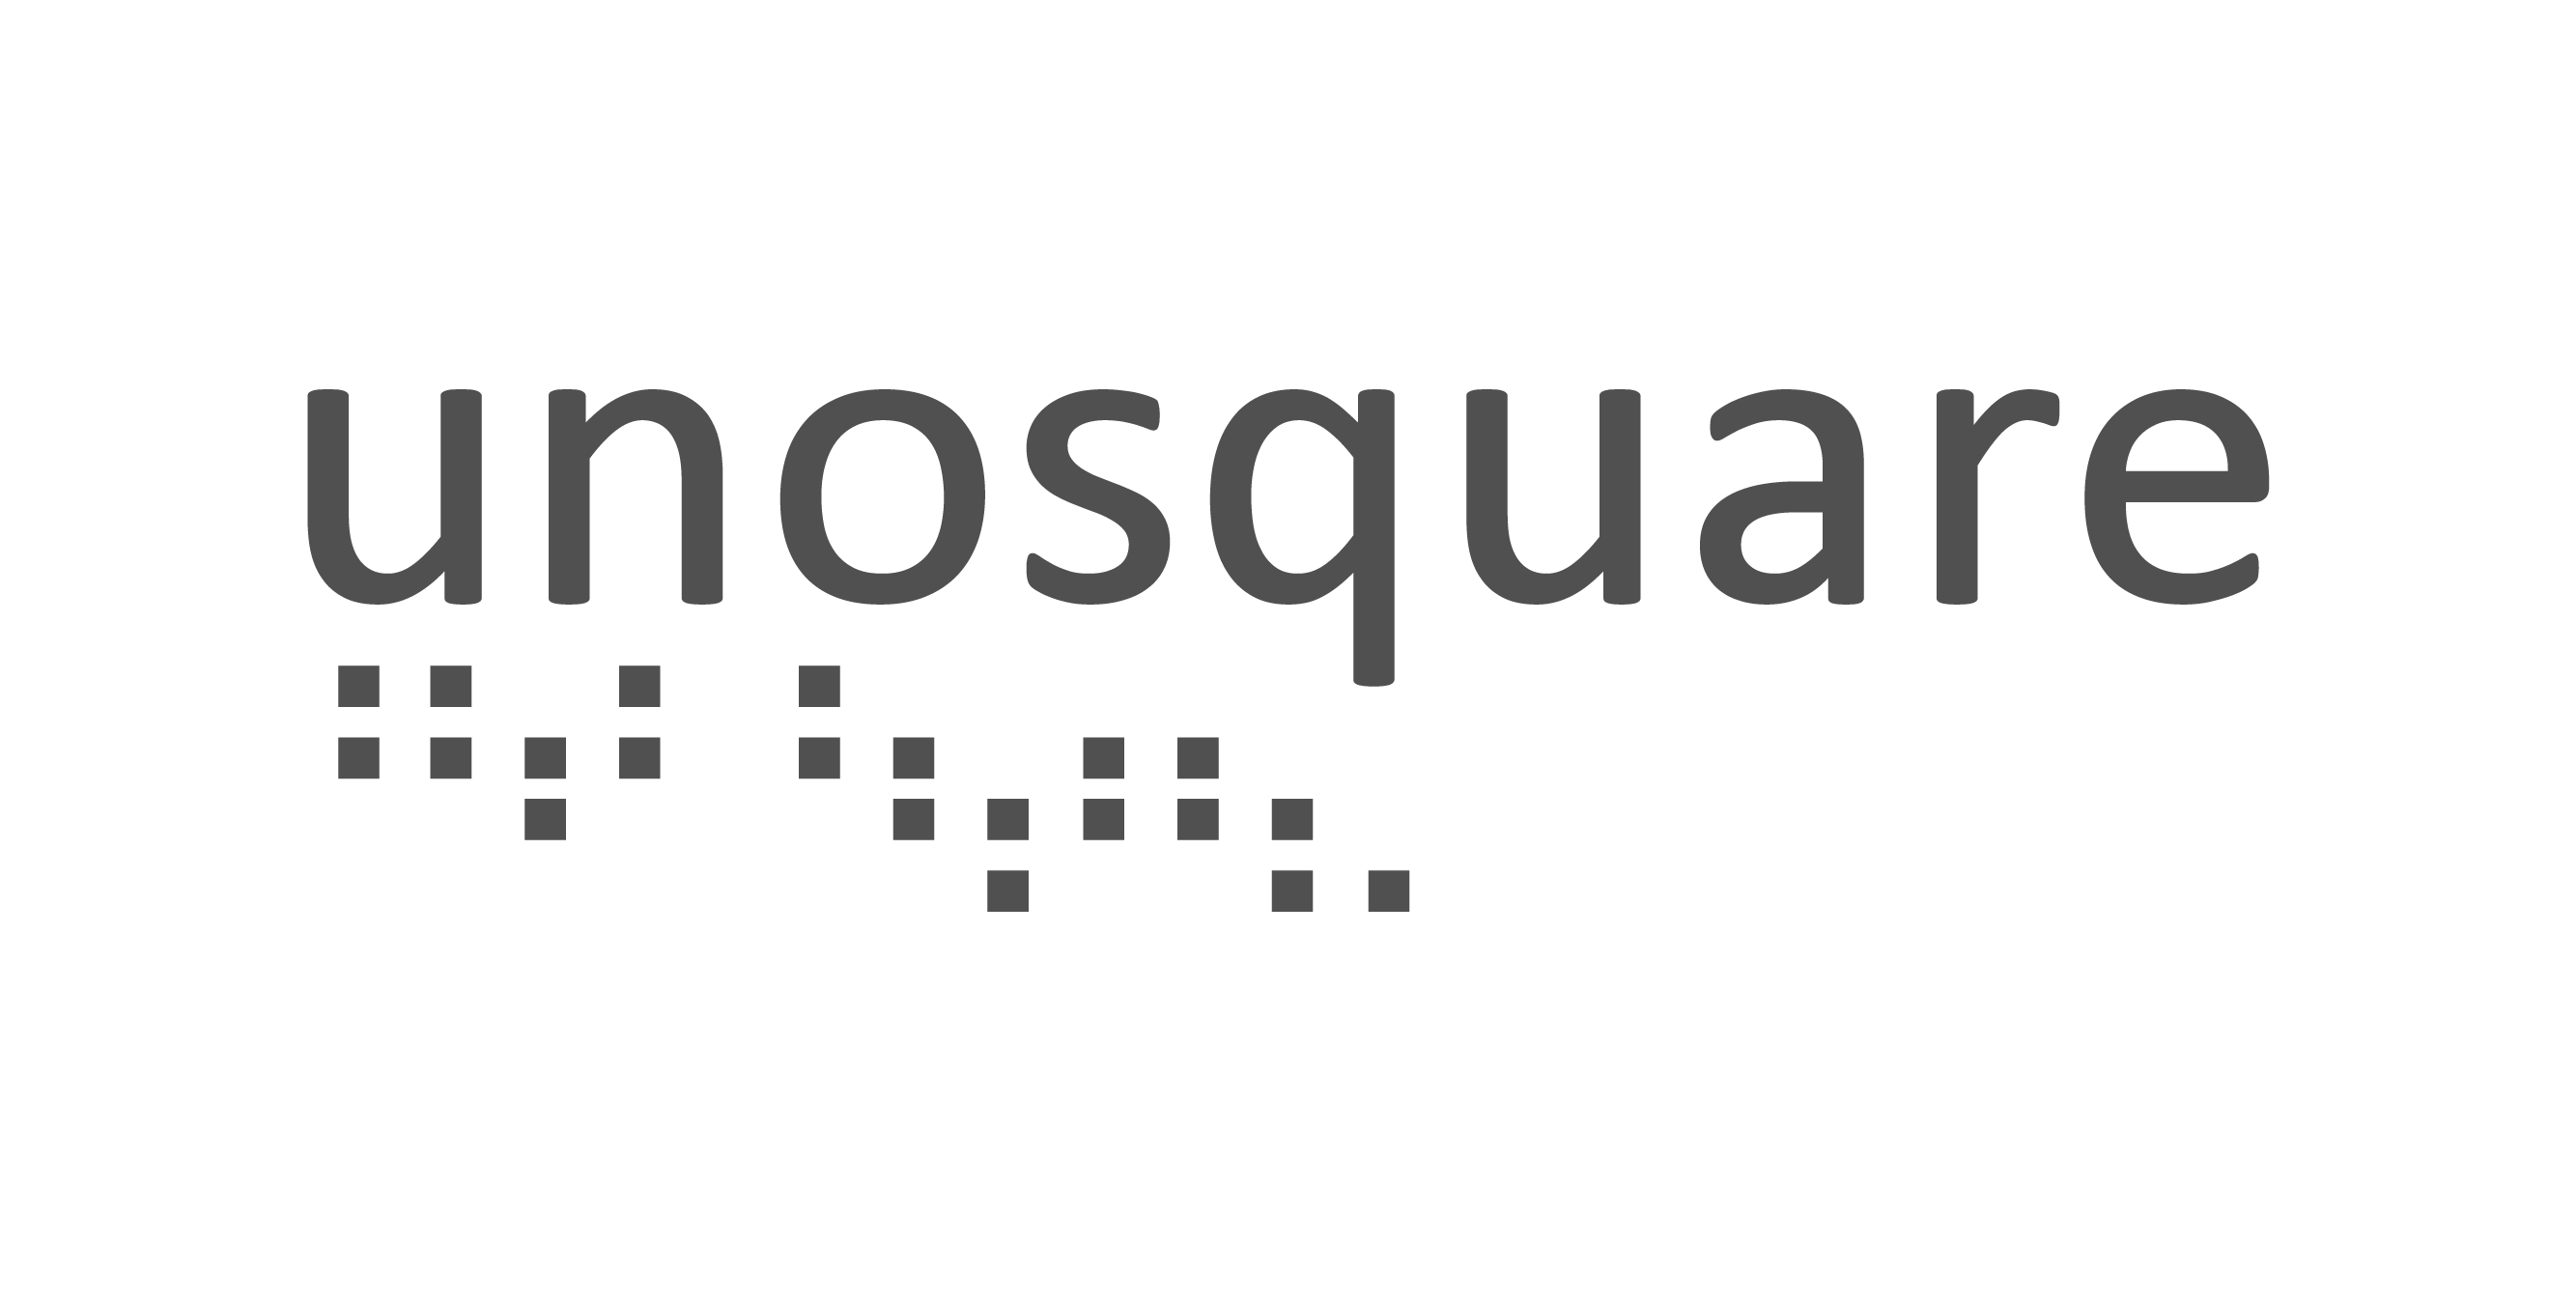 logo_unosquare.png